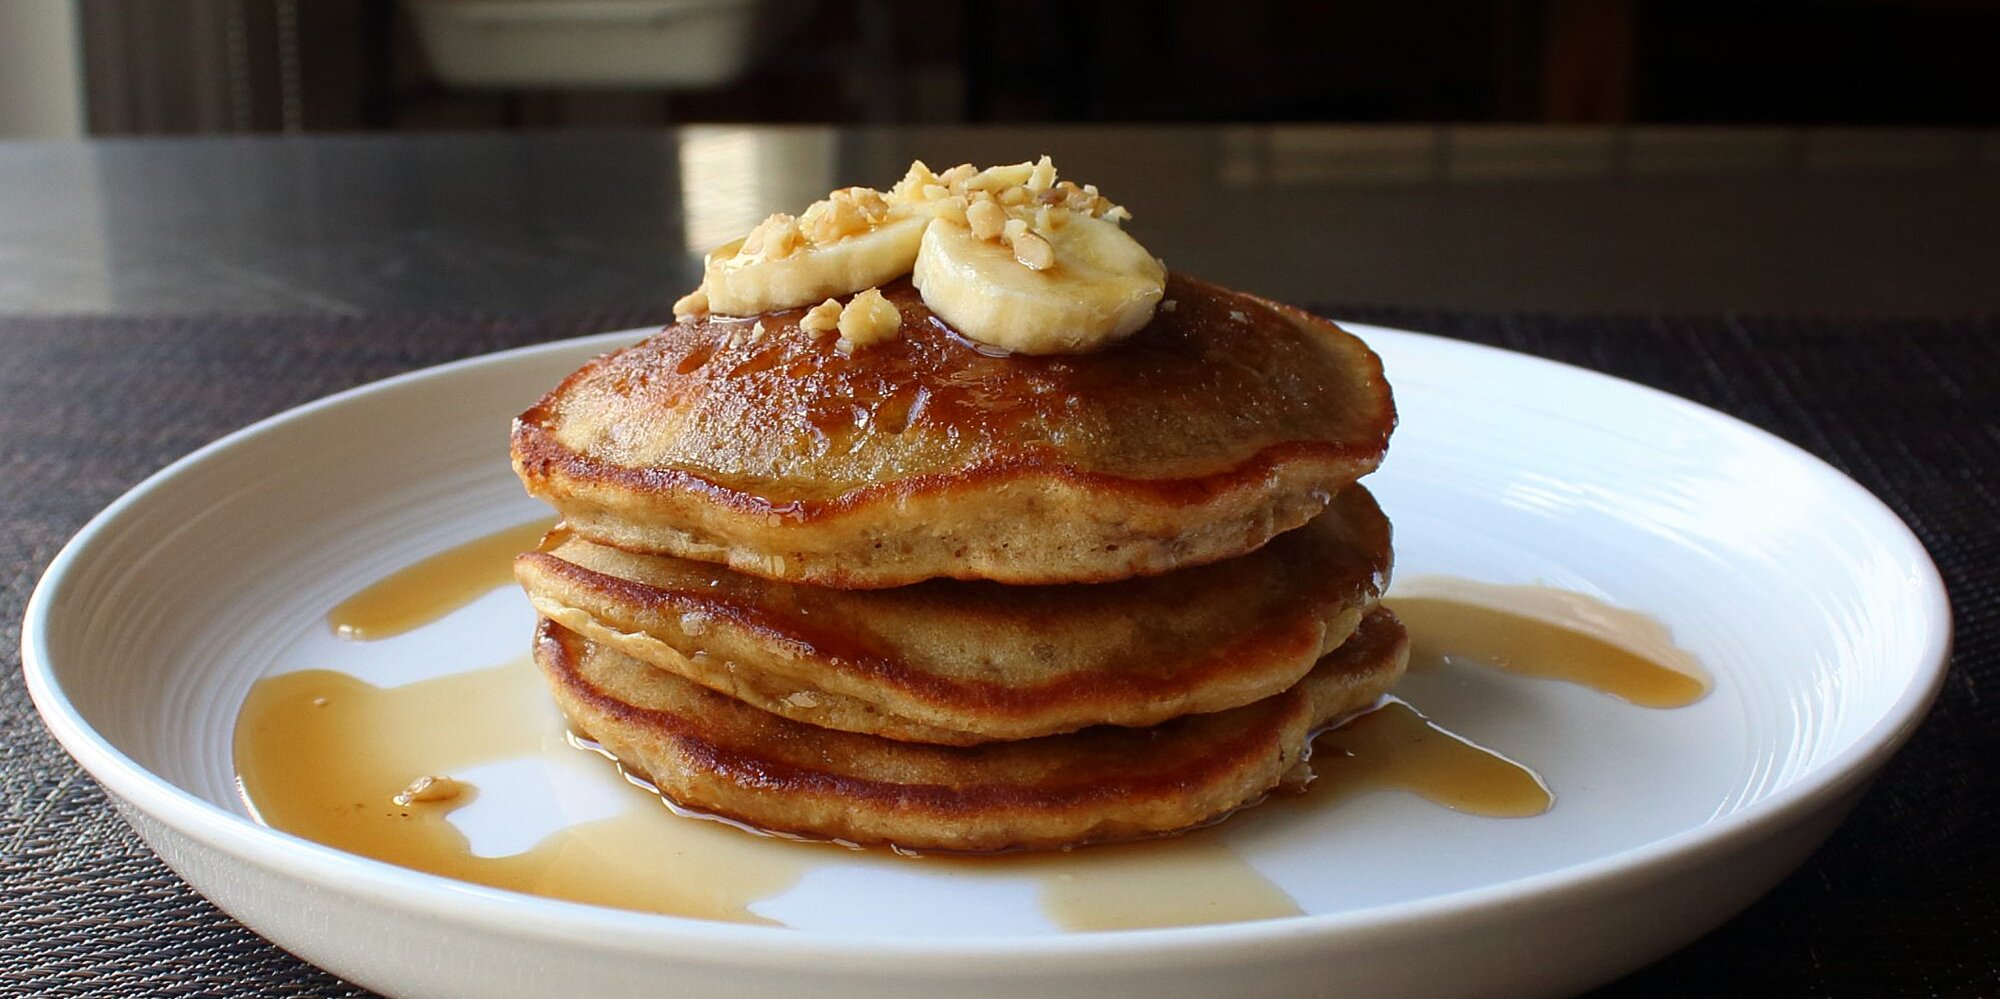 chef johns banana bread pancakes are the very best of both